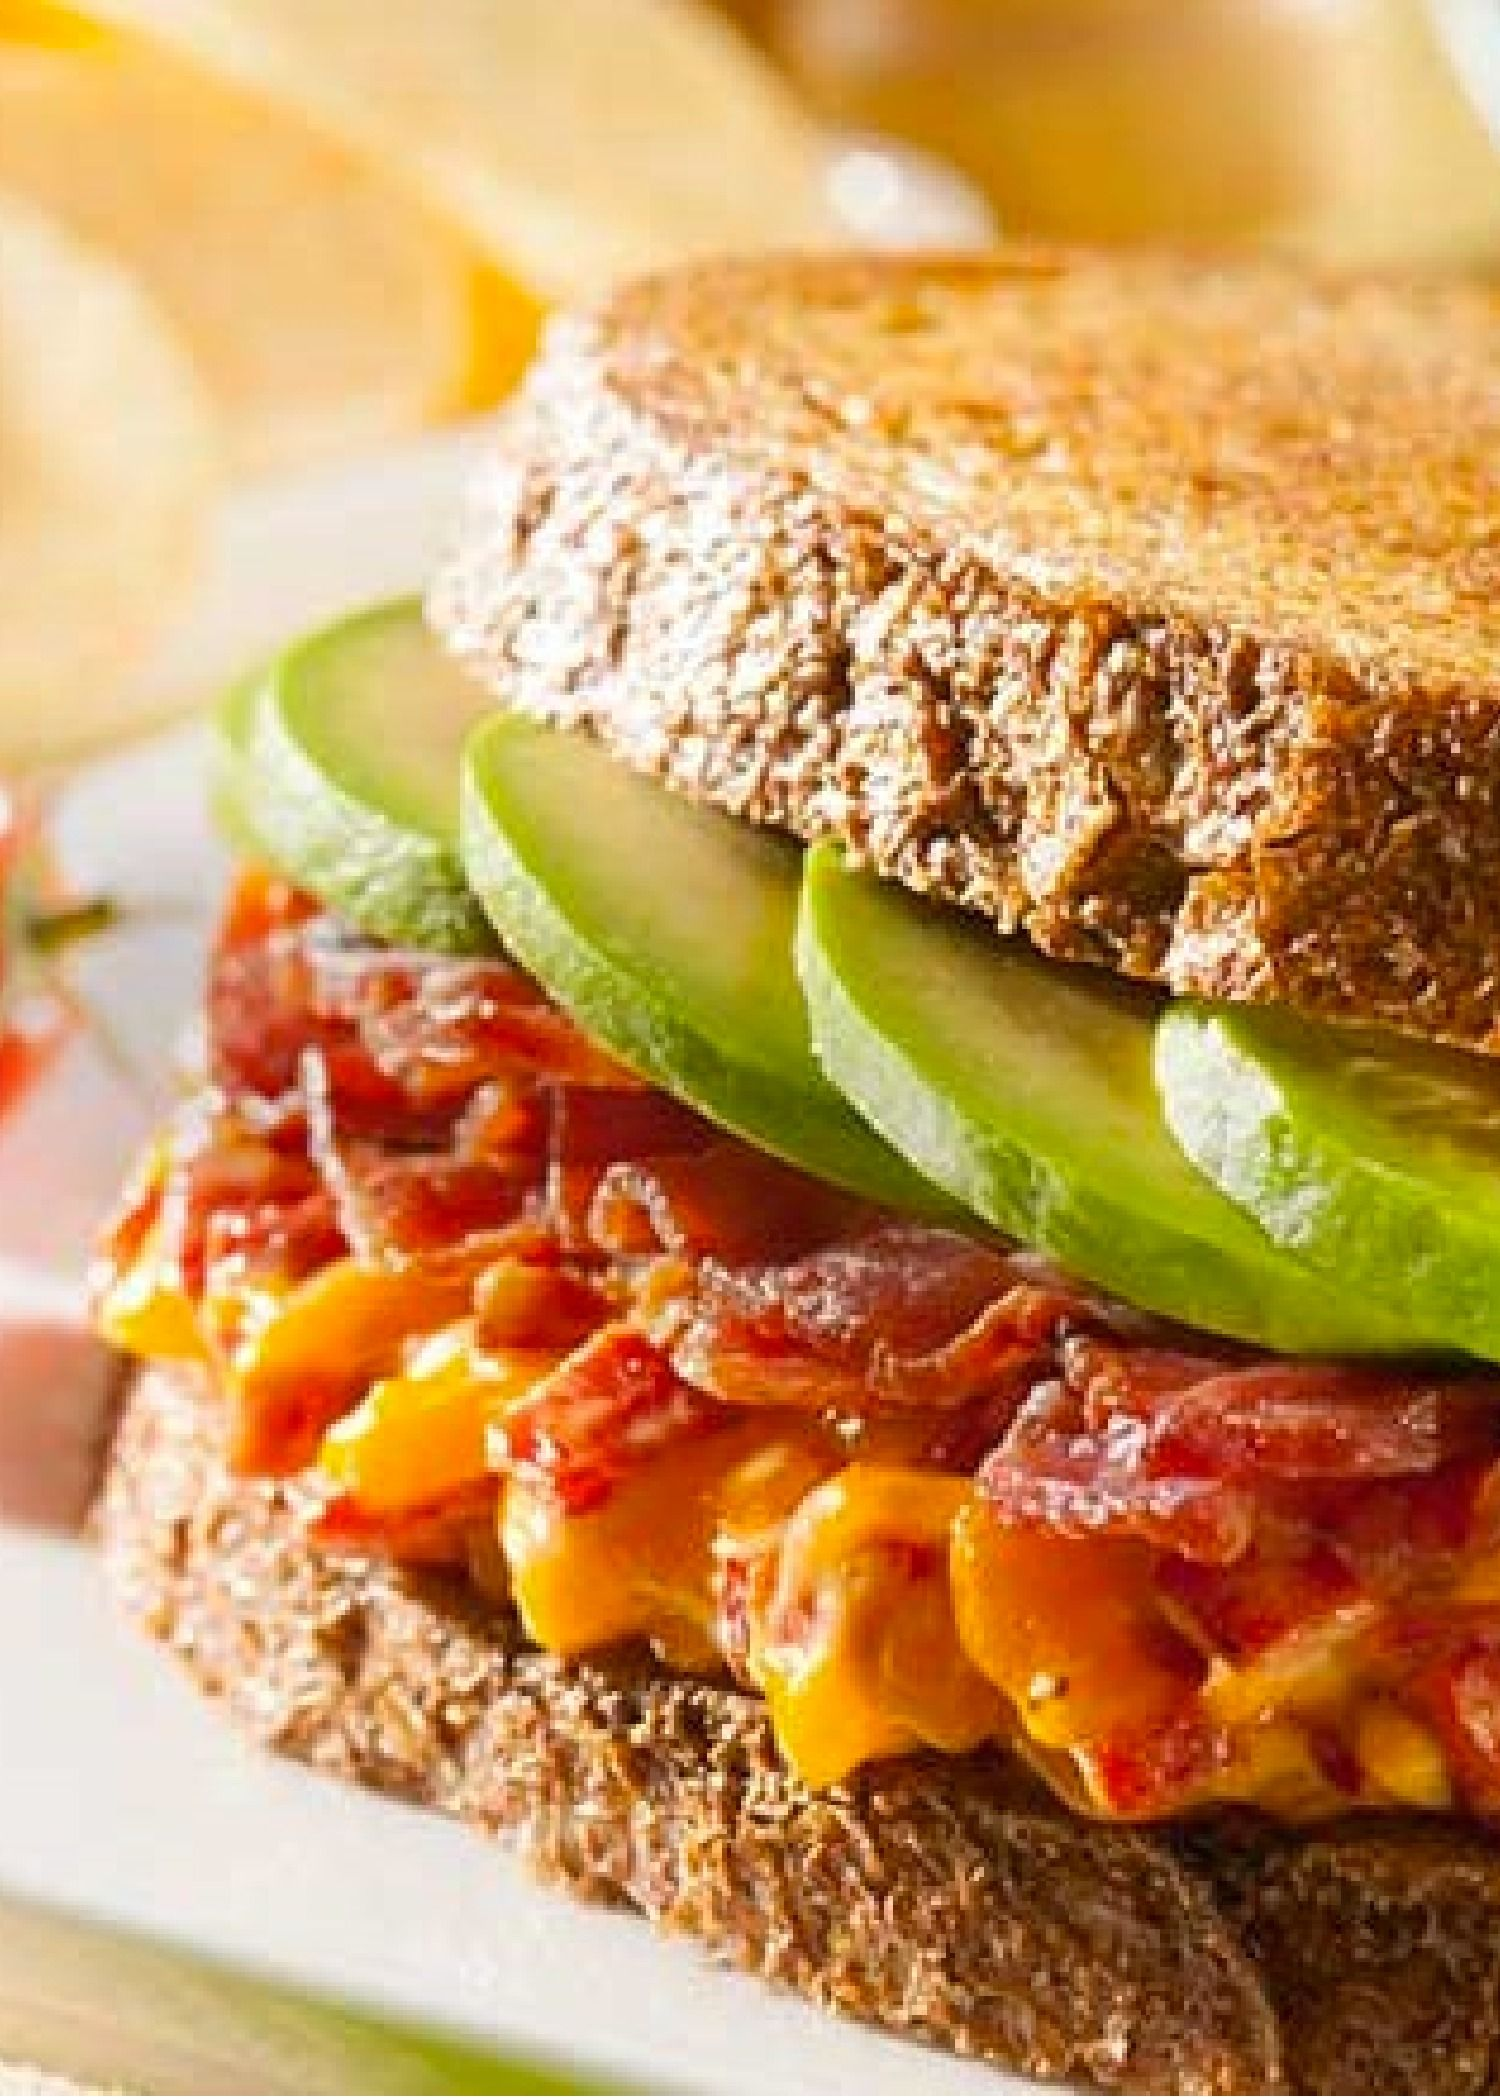 Make your lunch sizzle with this mouthwatering Grilled Pimento Cheese w/ Avocado and Bacon Sandwich! PIN and SAVE for later!